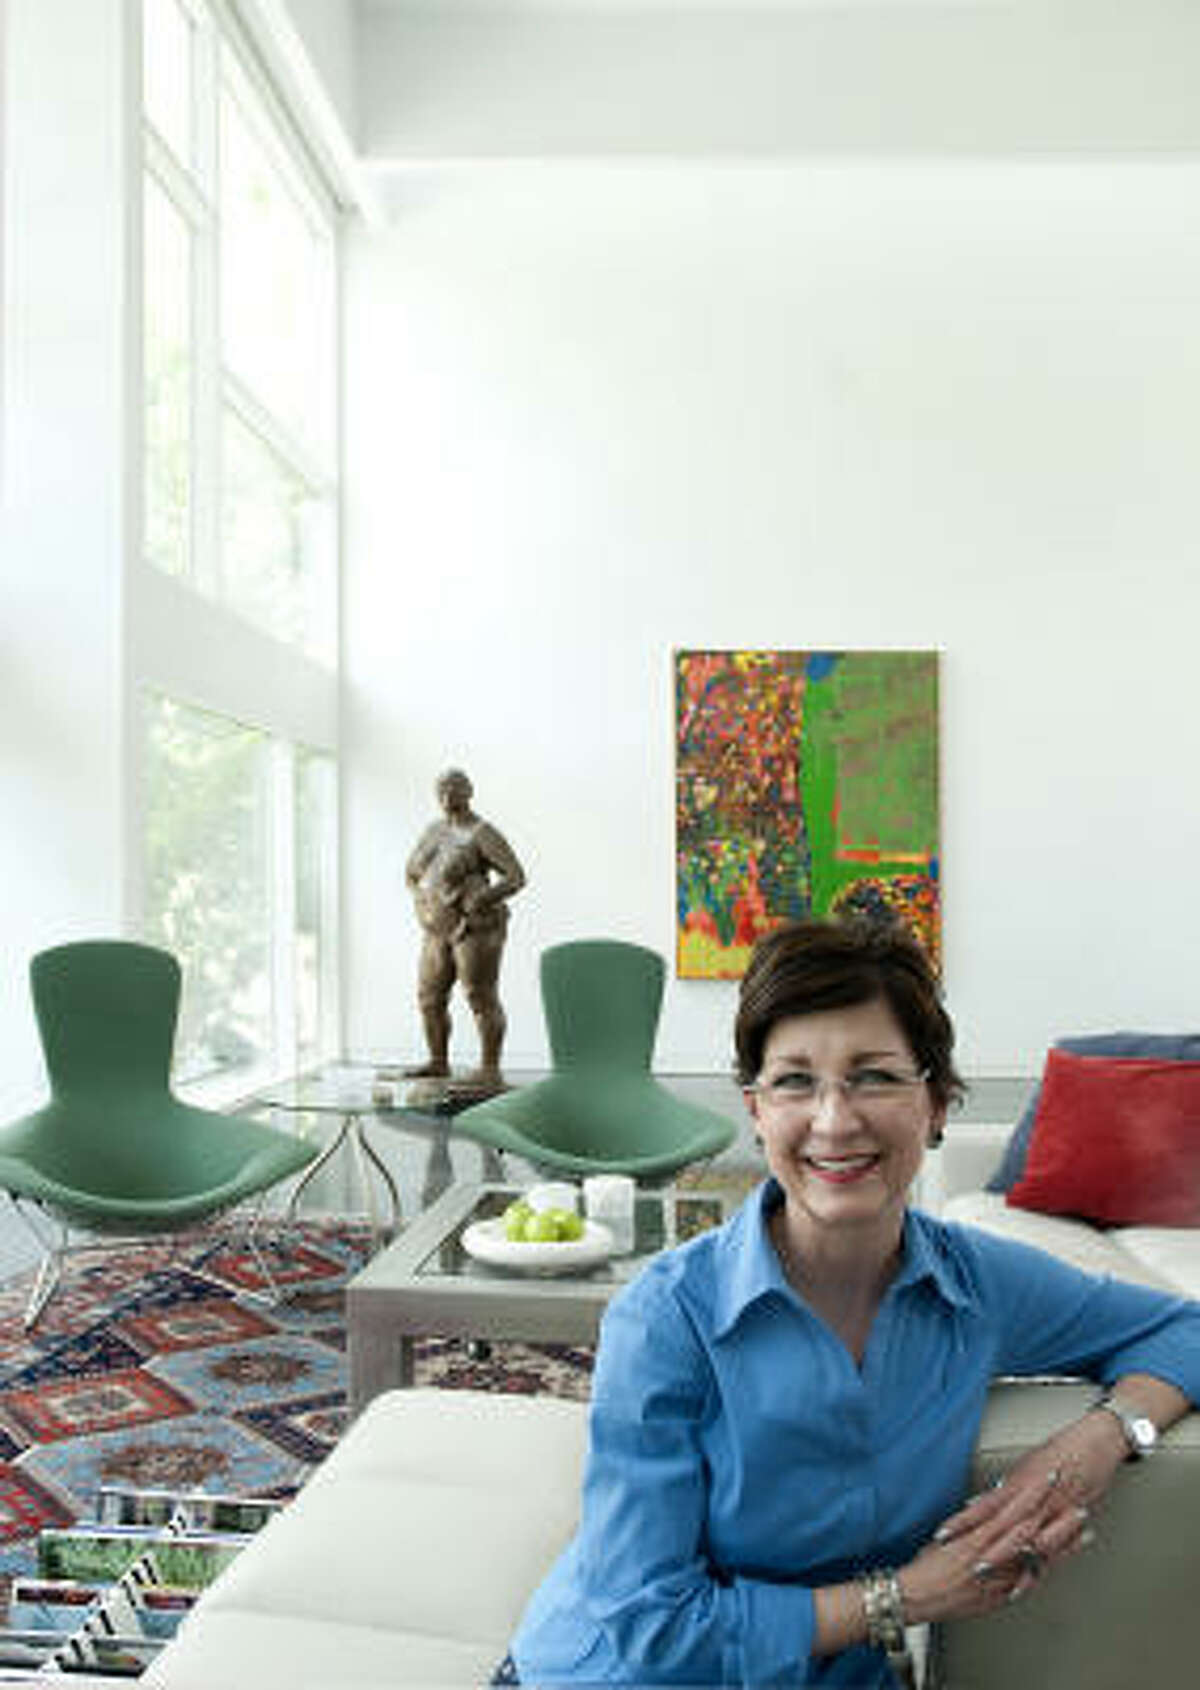 Artist Cara Barer in the living area of her Houston home, which features Francisco Zuniga's bronze sculpture Mujer con Niño en la Cadera (Woman With Child on the Hip) and a large painting by Dick Wray. Bertoia chairs; Roche Bobois sofa; Artemide floor lamp.